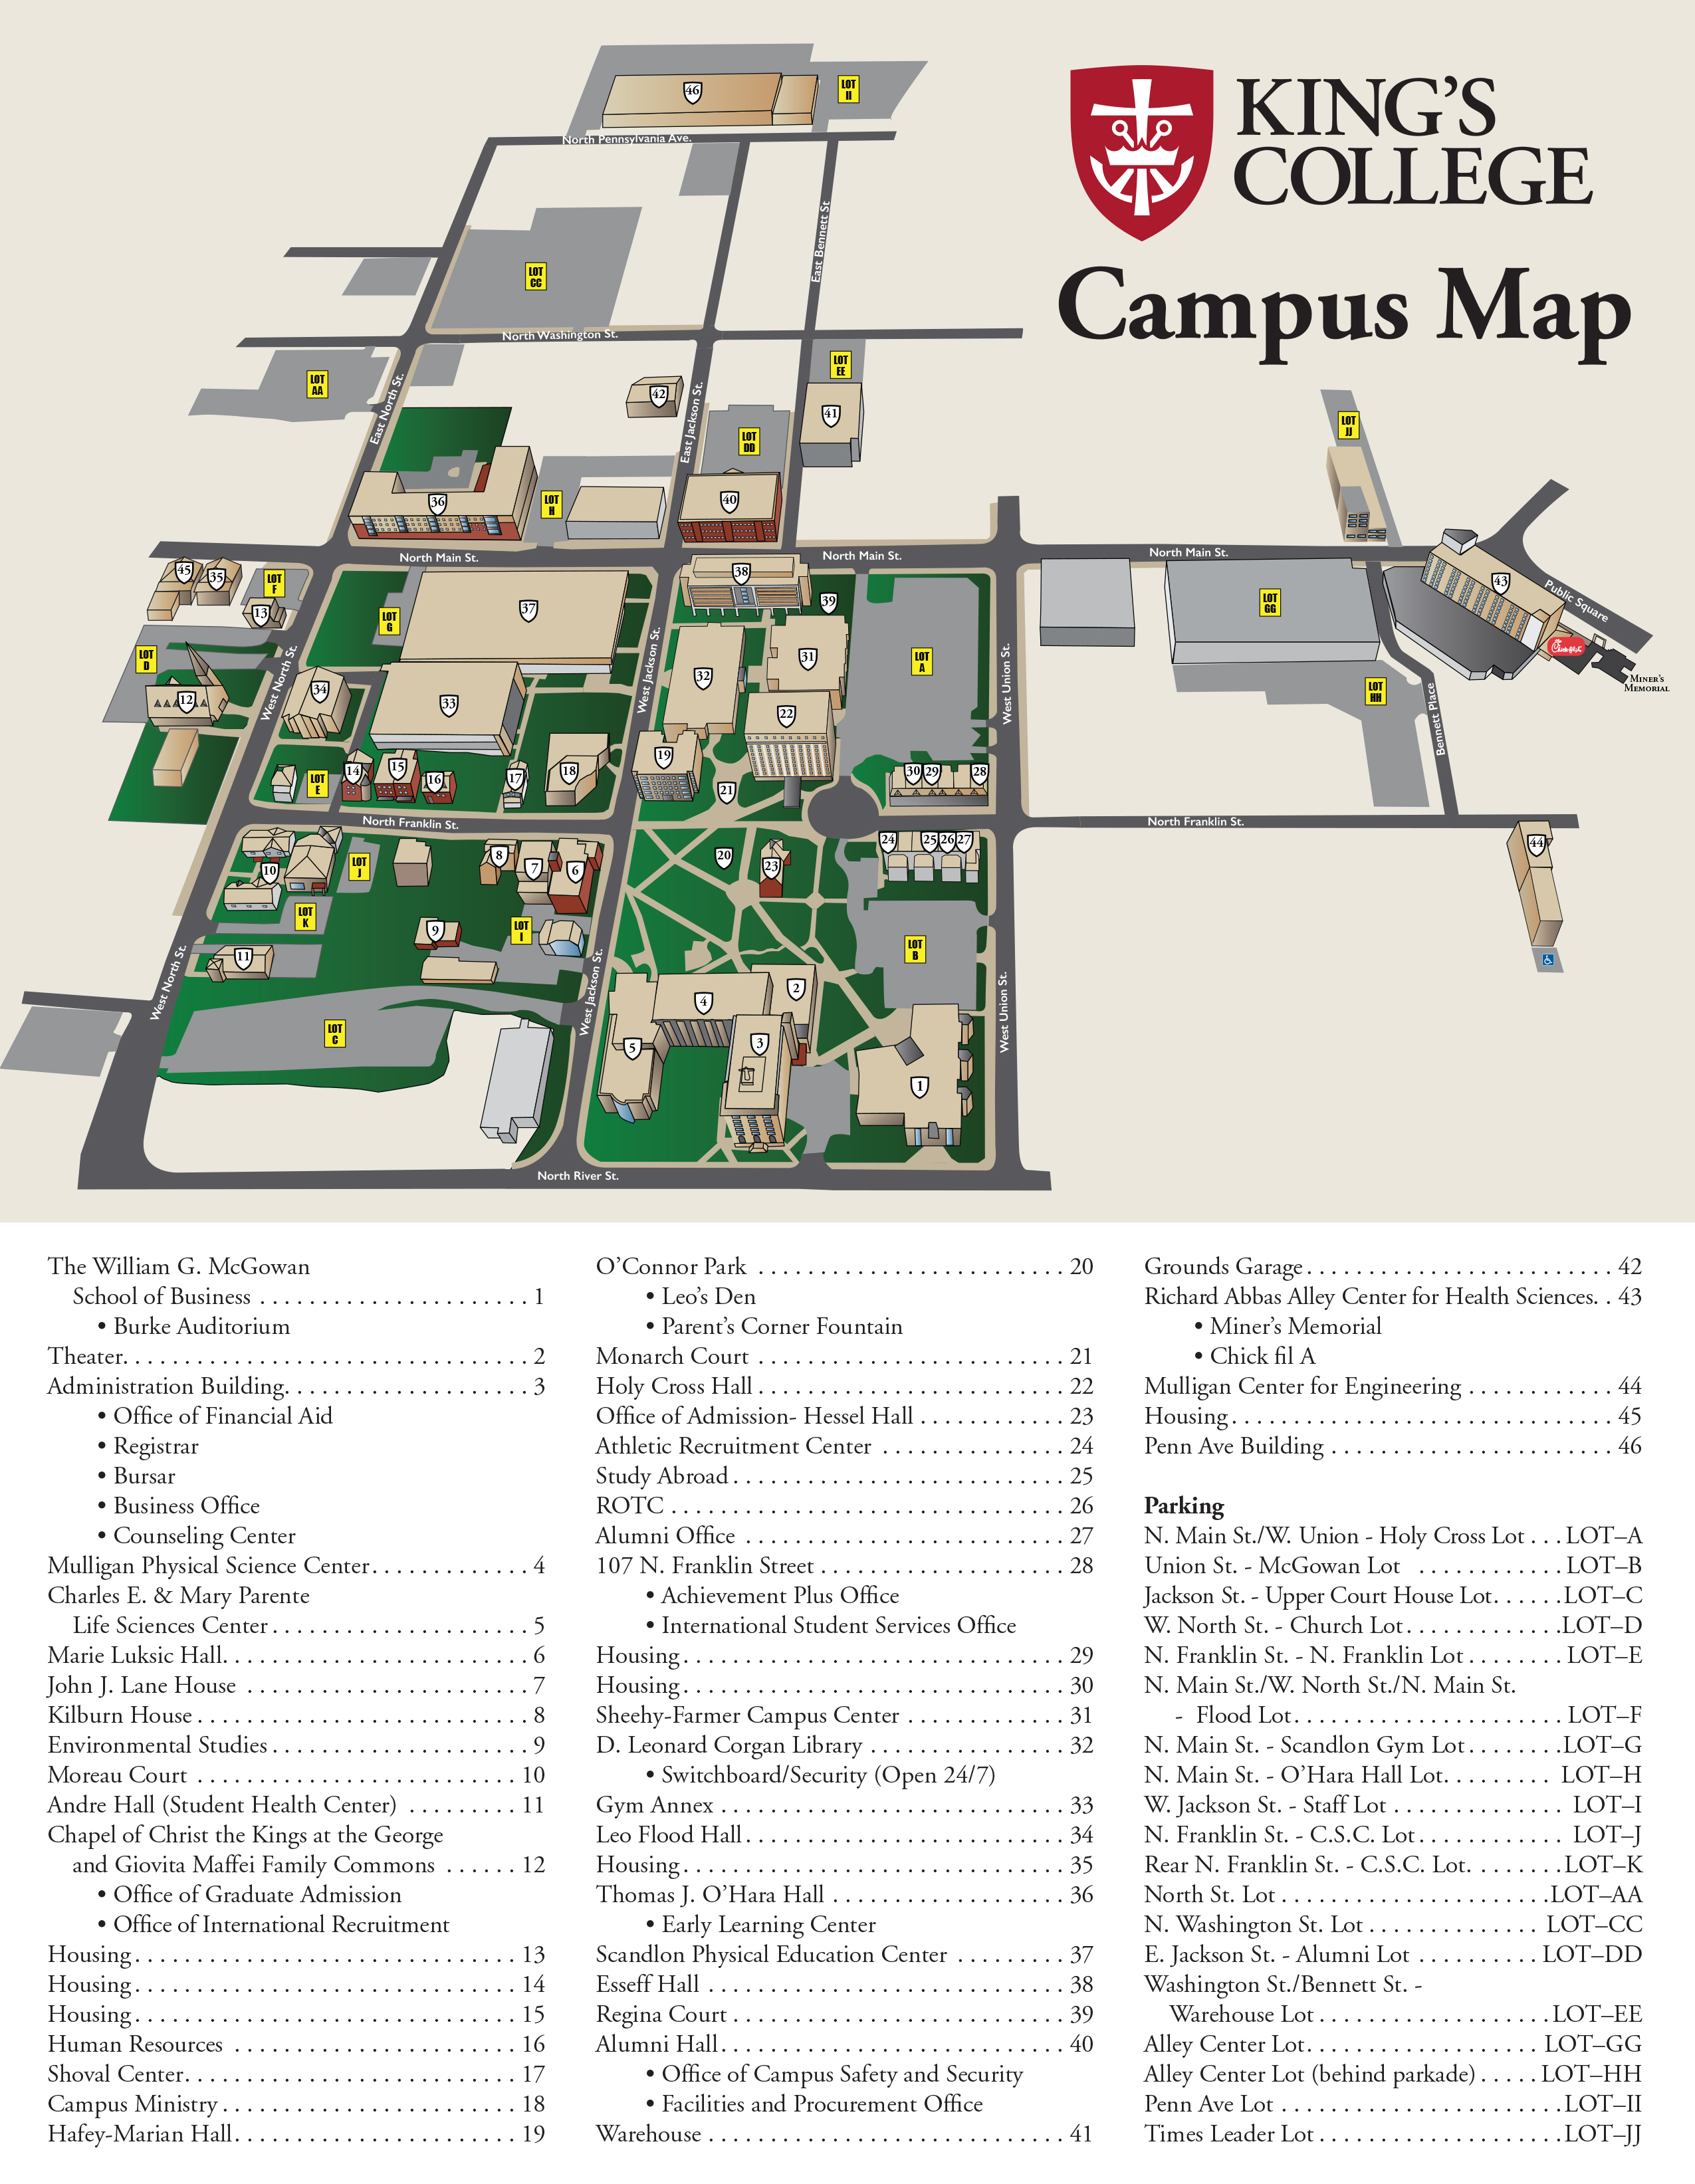 King's College - Campus Map